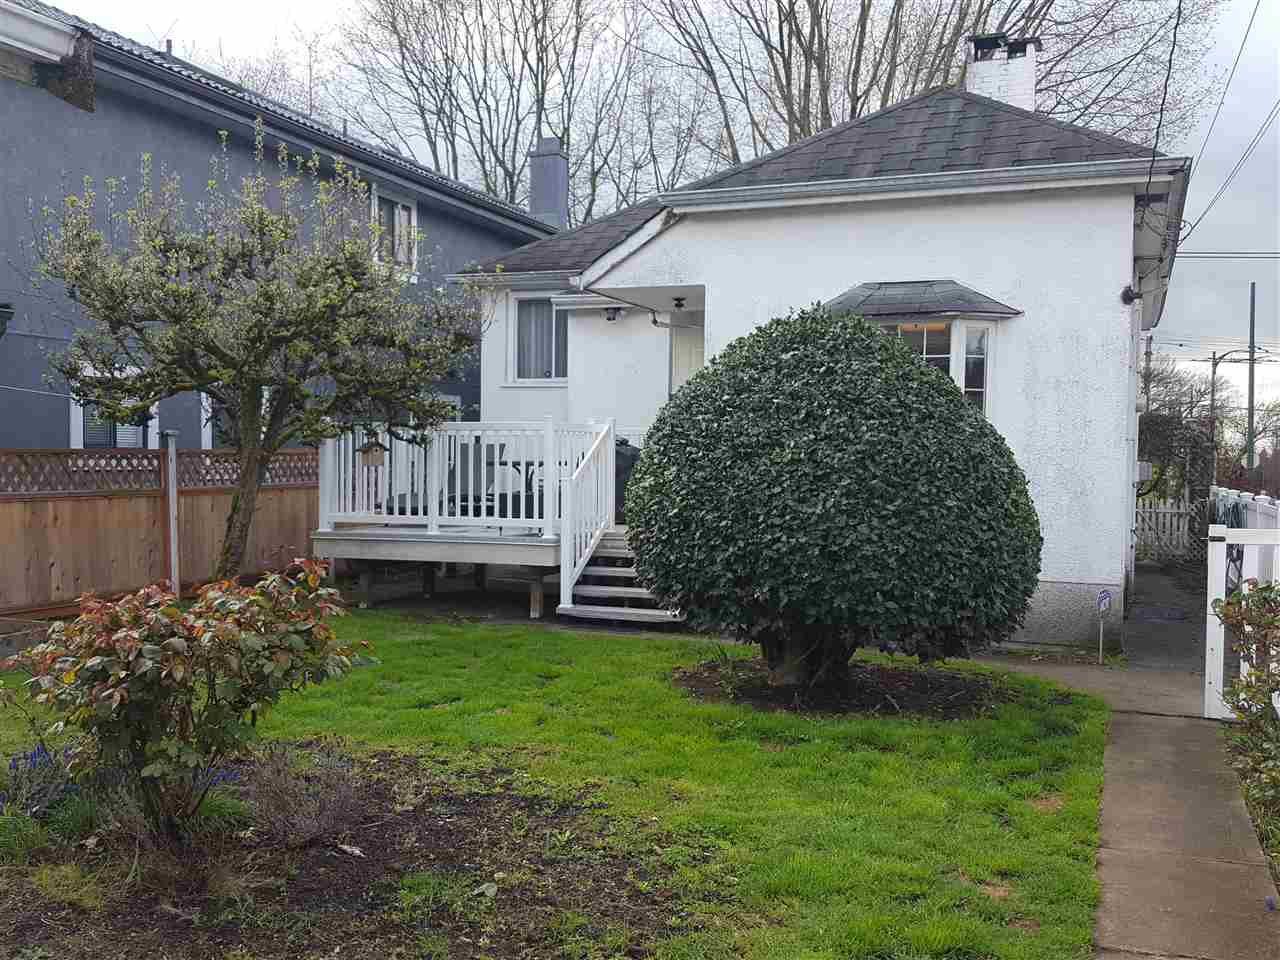 Photo 15: Photos: 1599 W 63RD Avenue in Vancouver: South Granville House for sale (Vancouver West)  : MLS®# R2157245